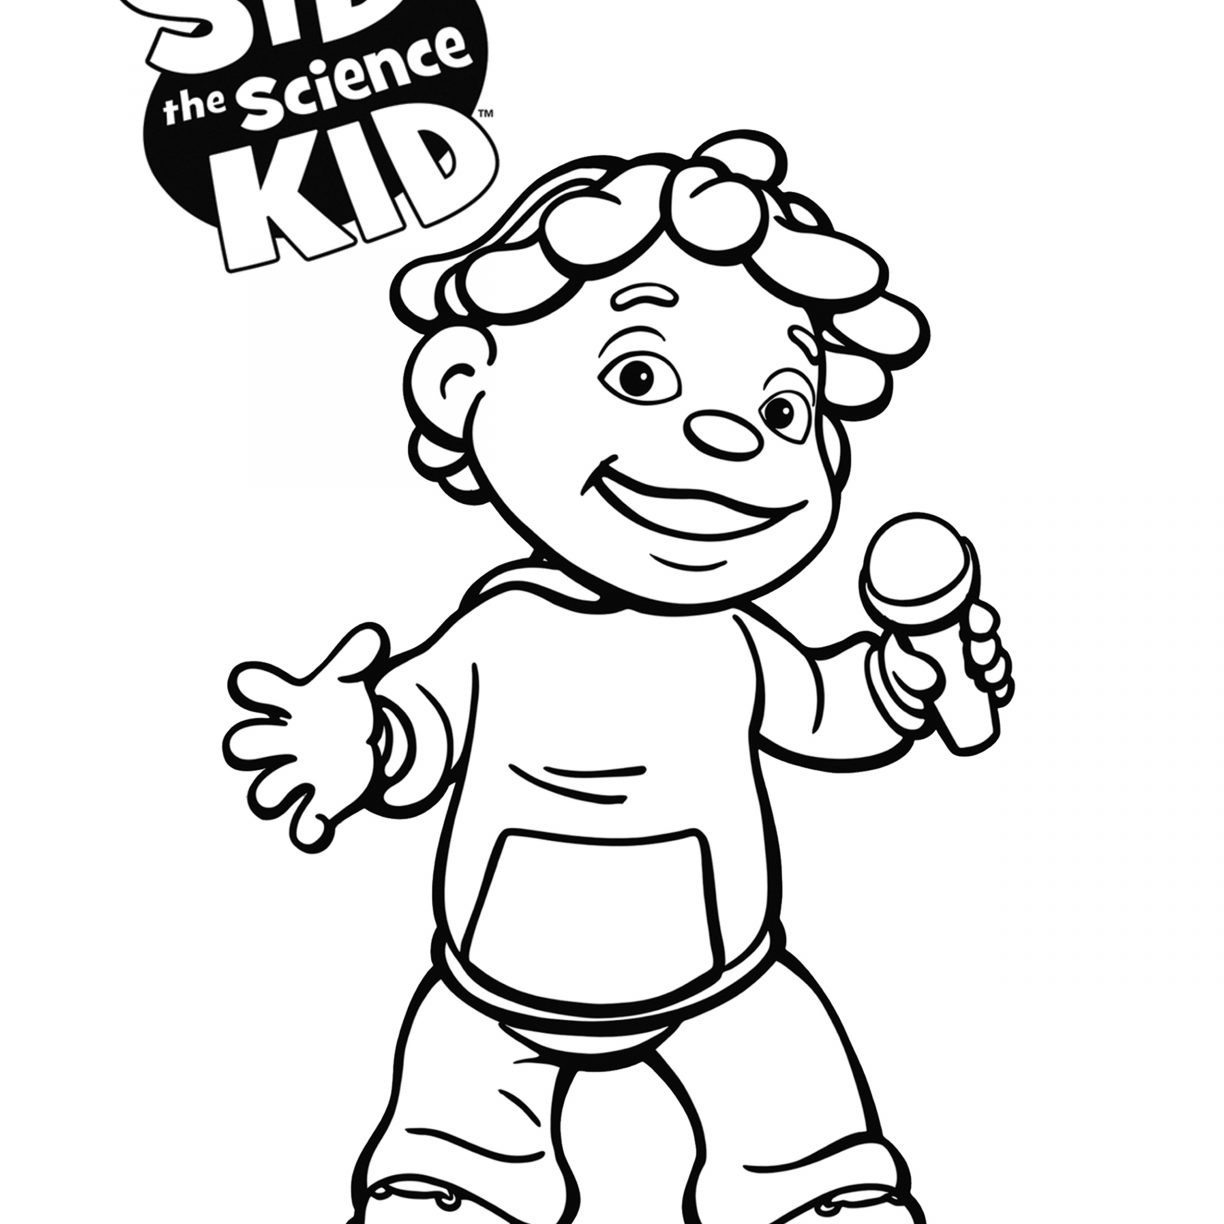 1224x1224 Education Science Coloring Pages For Preschool Womanmate